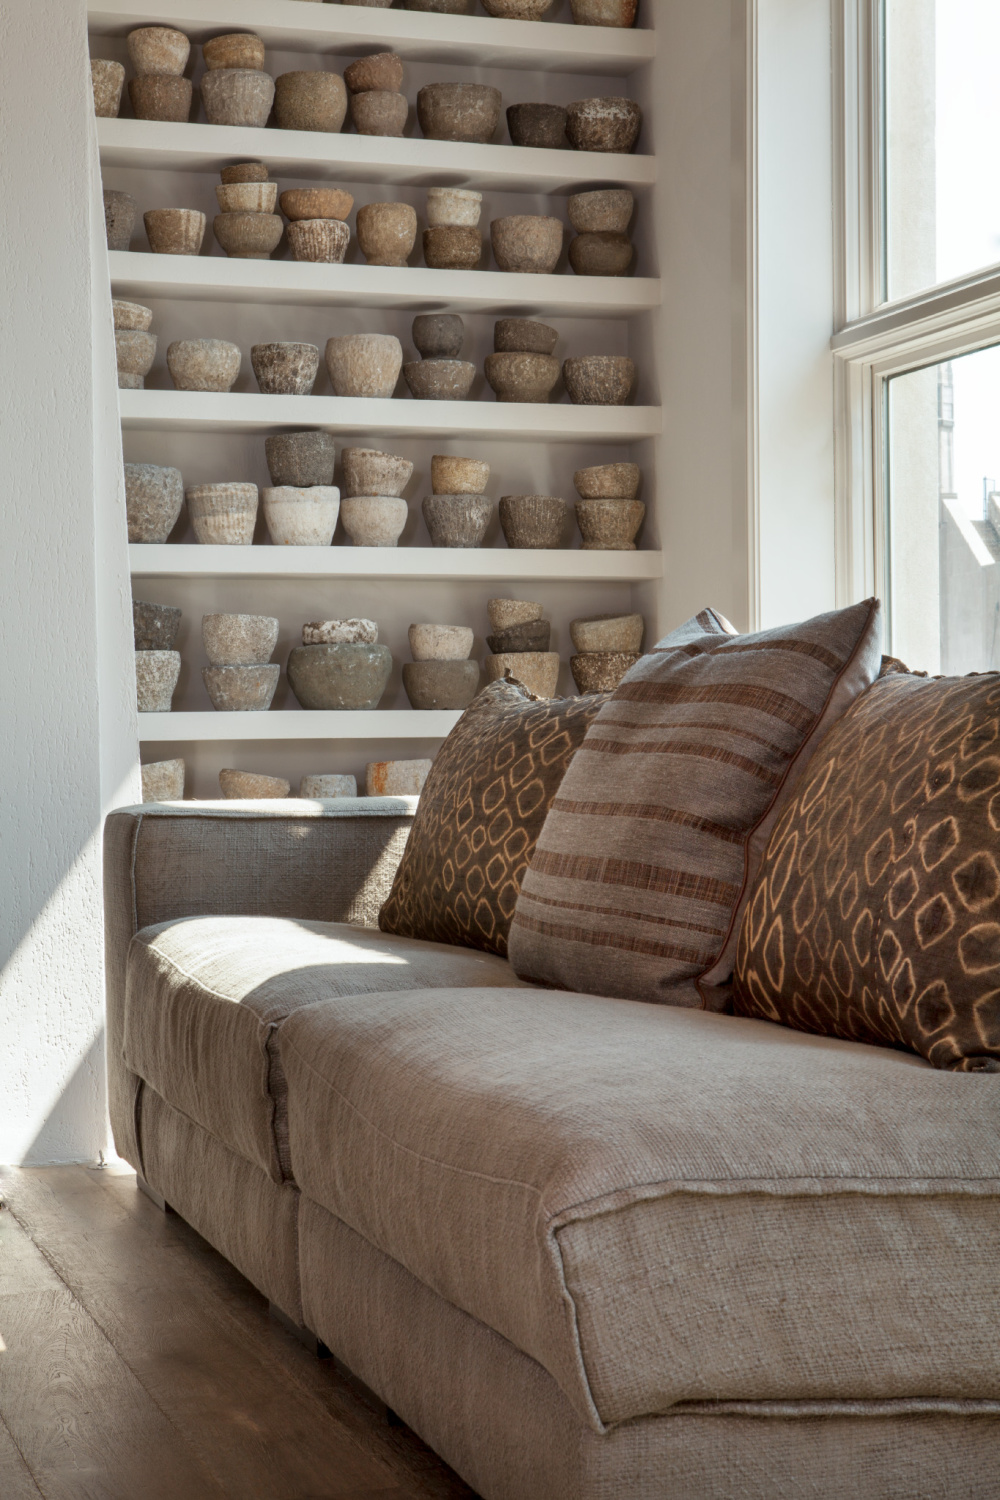 Shelves of artful antique Chinese mortars in a soulful space with design by Michael Del Piero.